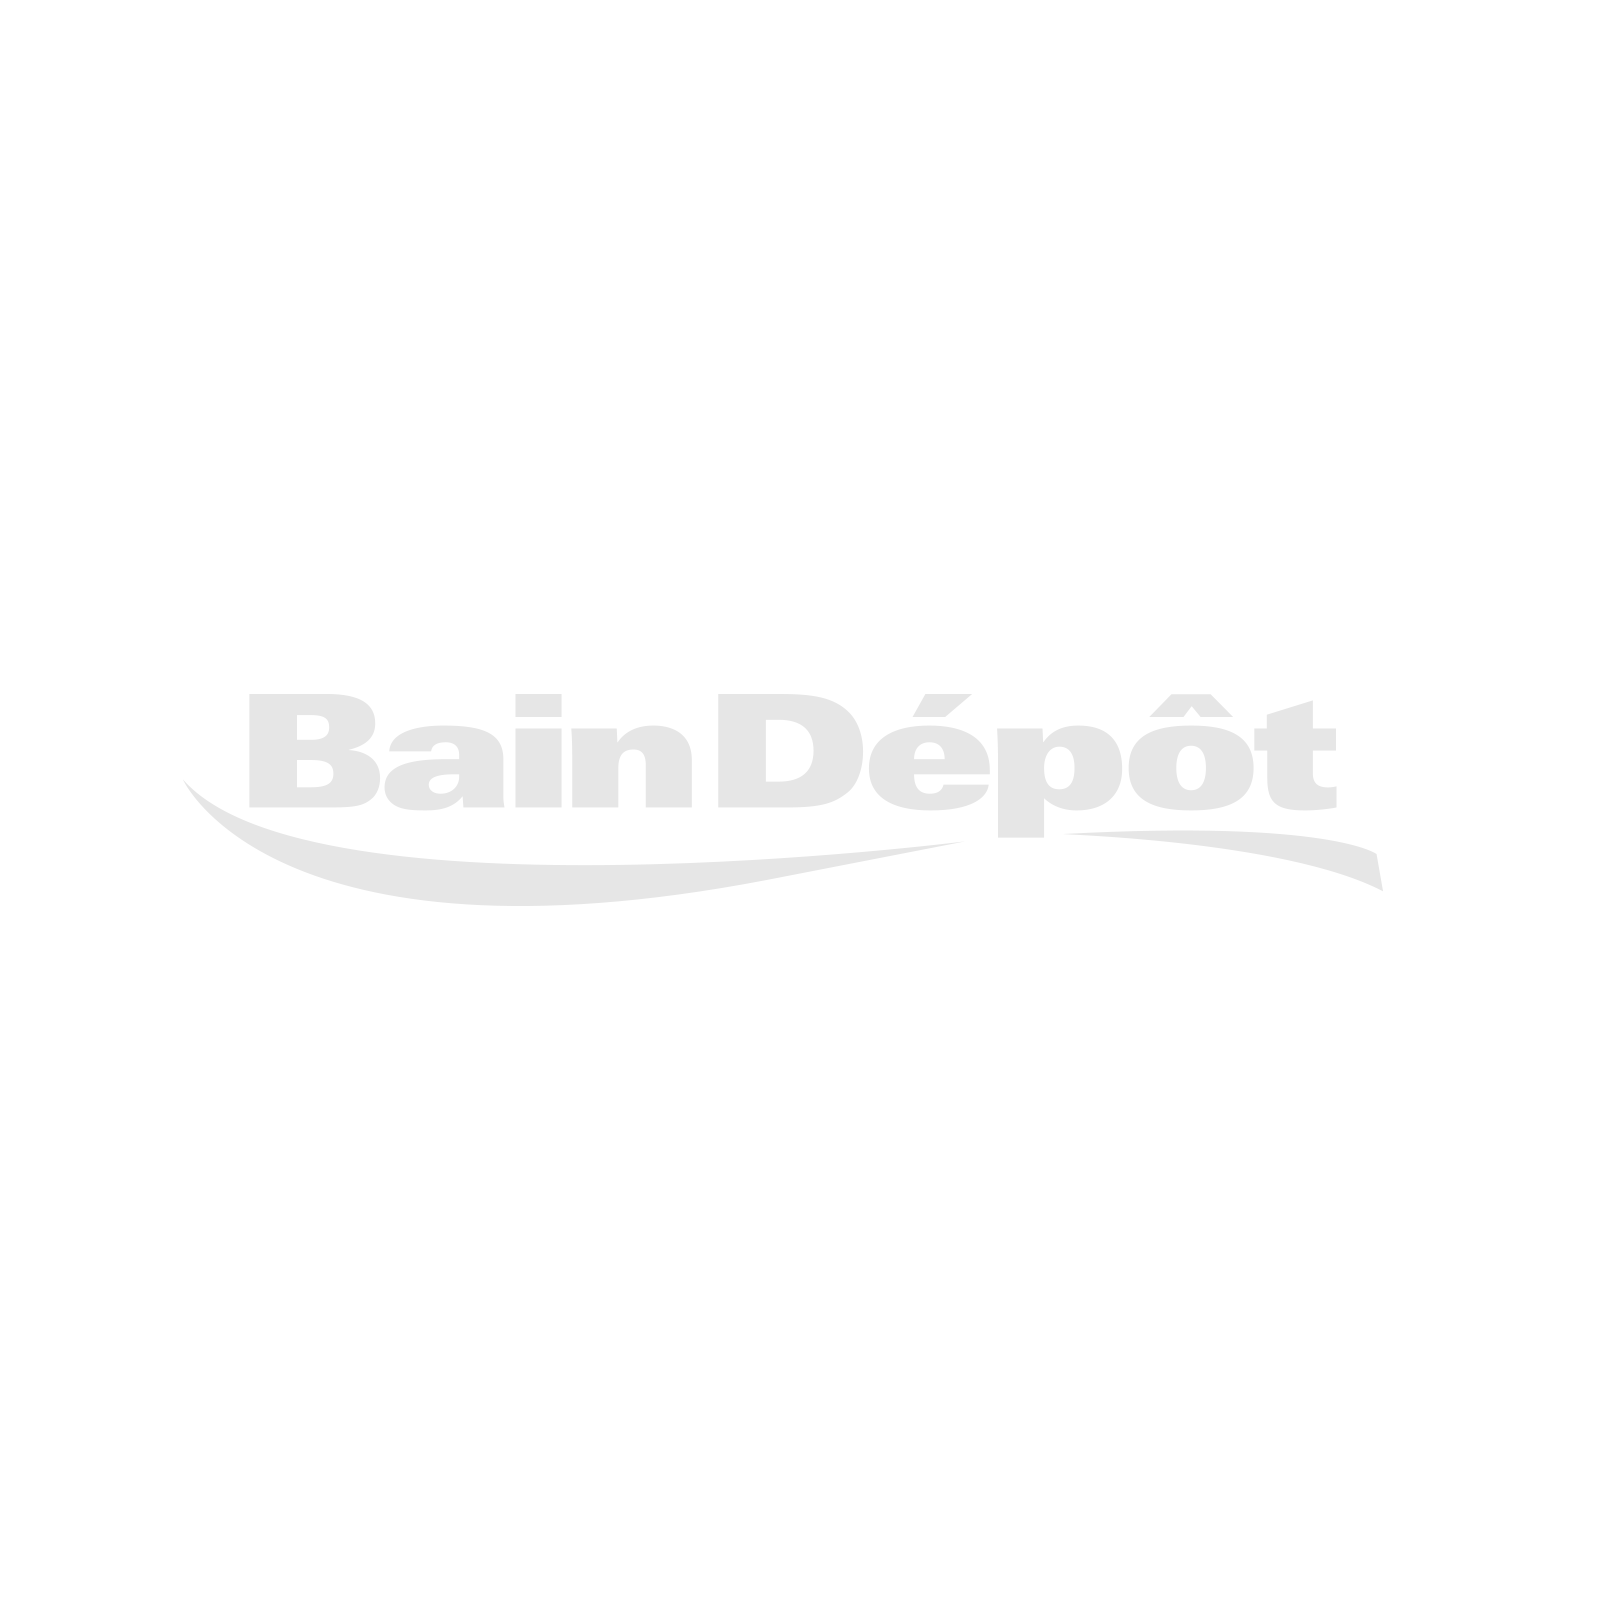 Chrome 4-piece roman bathtub faucet with a minimalist design